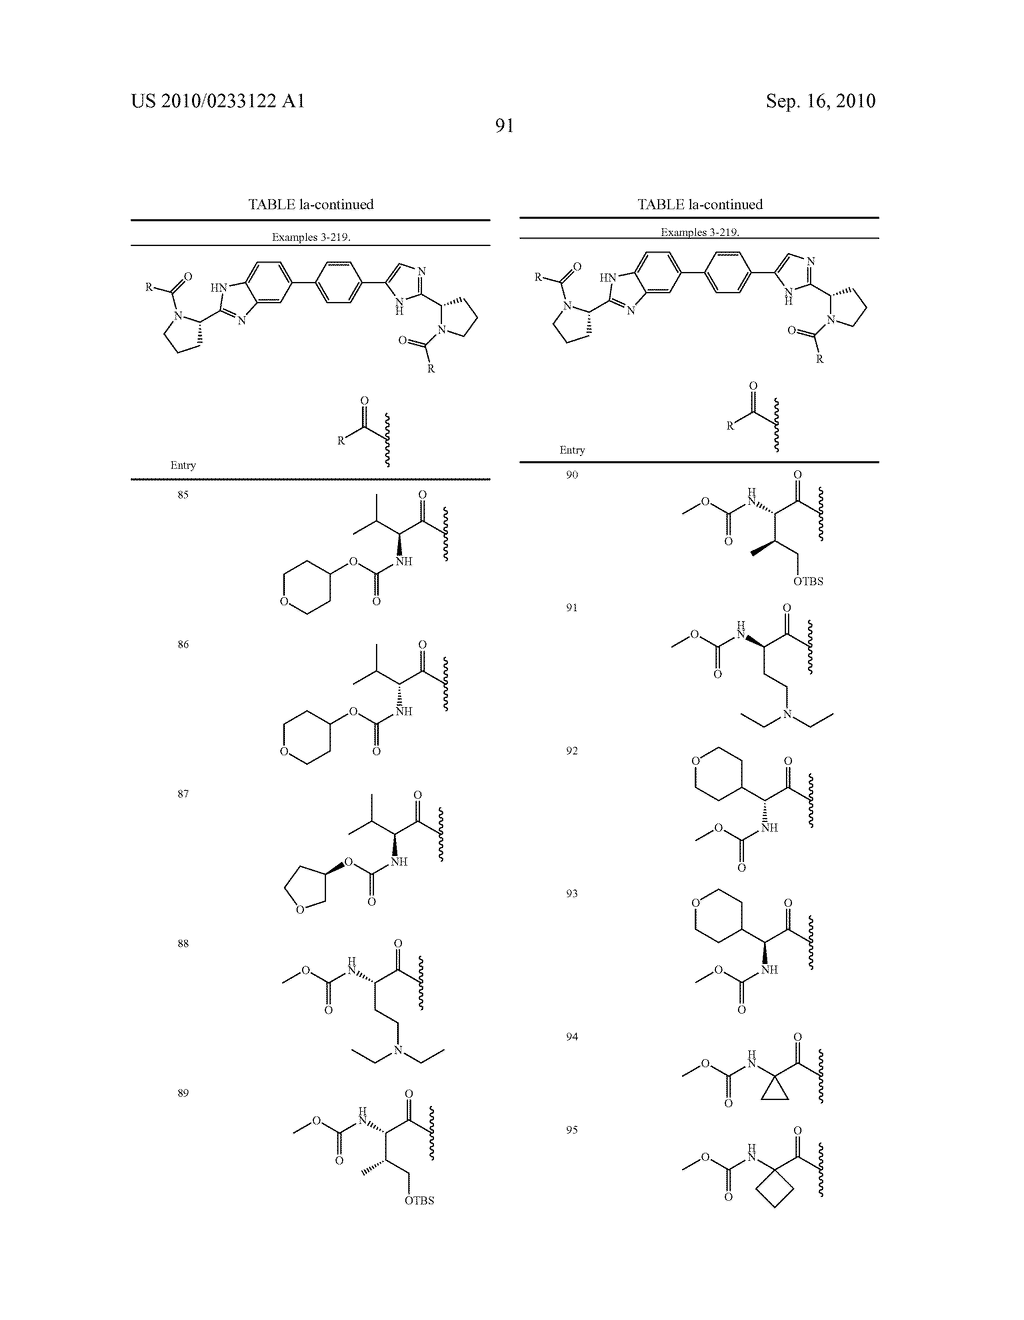 NOVEL BENZIMIDAZOLE DERIVATIVES - diagram, schematic, and image 92